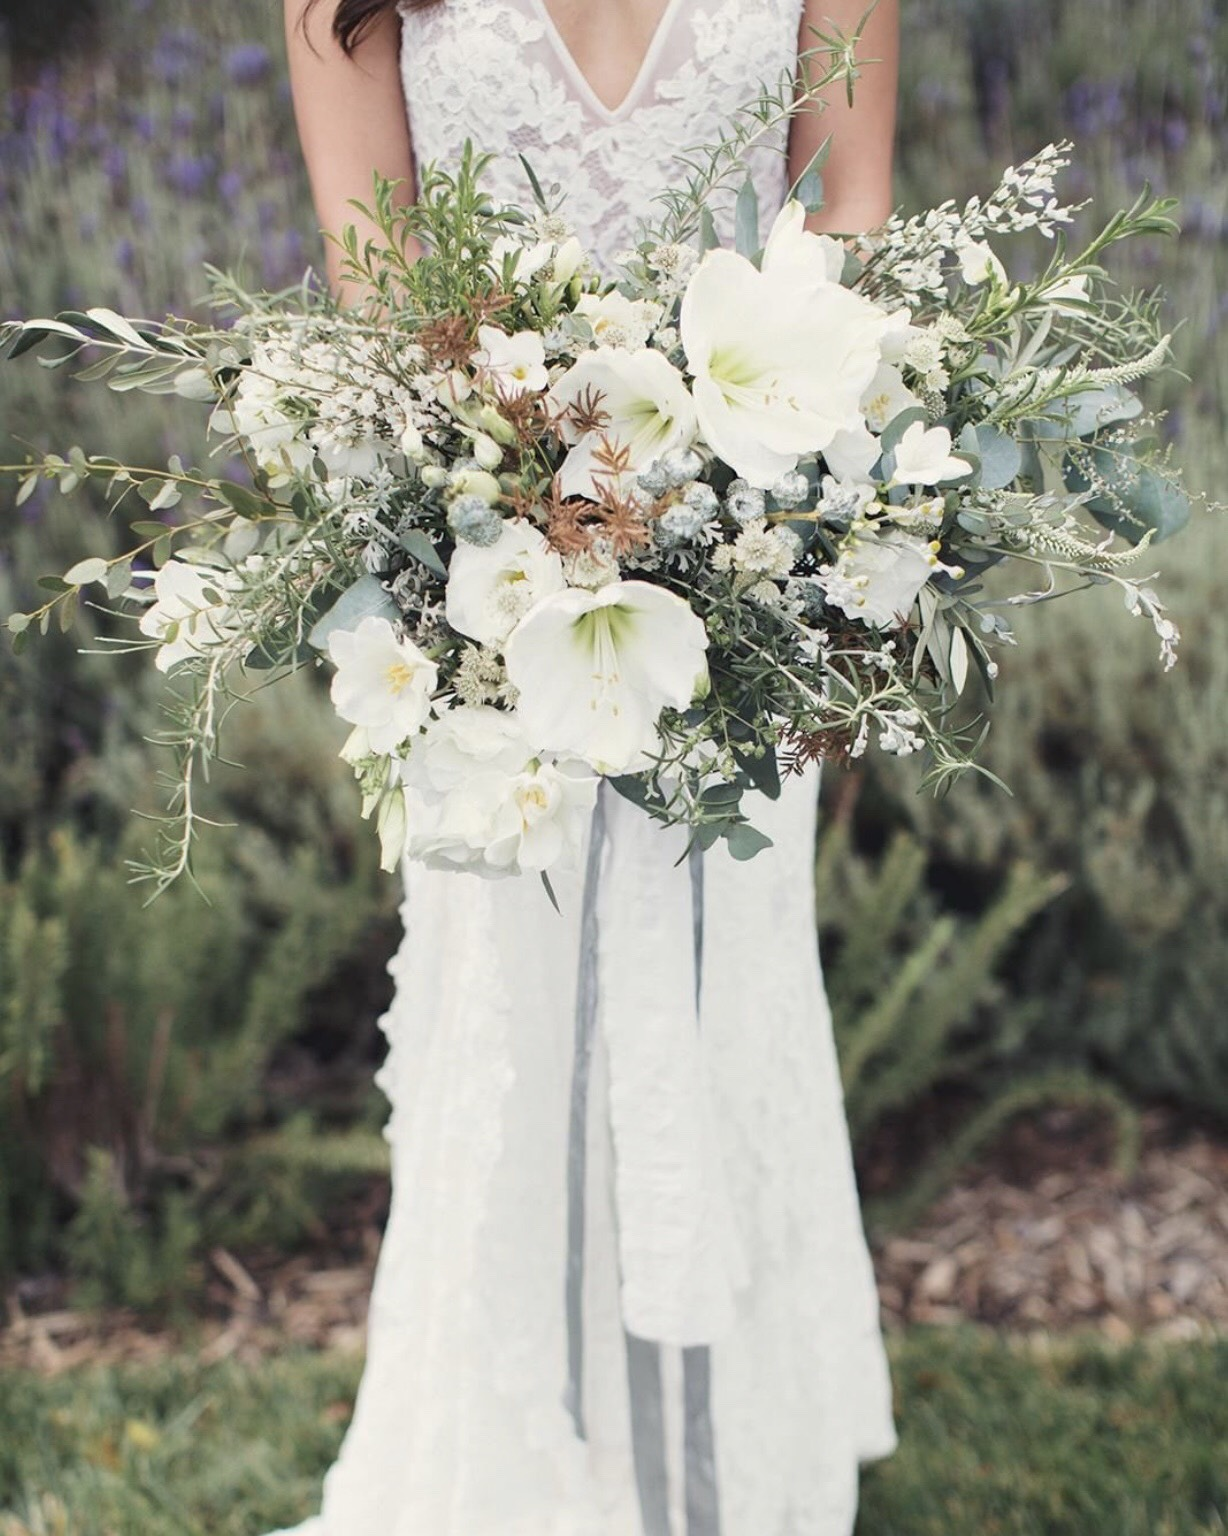 White florals & dusty greenery are brought together in a wildly perfect bouquet. 💐🙌🏼✨🏩🌳🌳 Florals:  @thepollenmill  | Photography:  @anneclairebrun  | Coordination:  @withgraceandloveevents  | Dress:  @madewithlovebridal